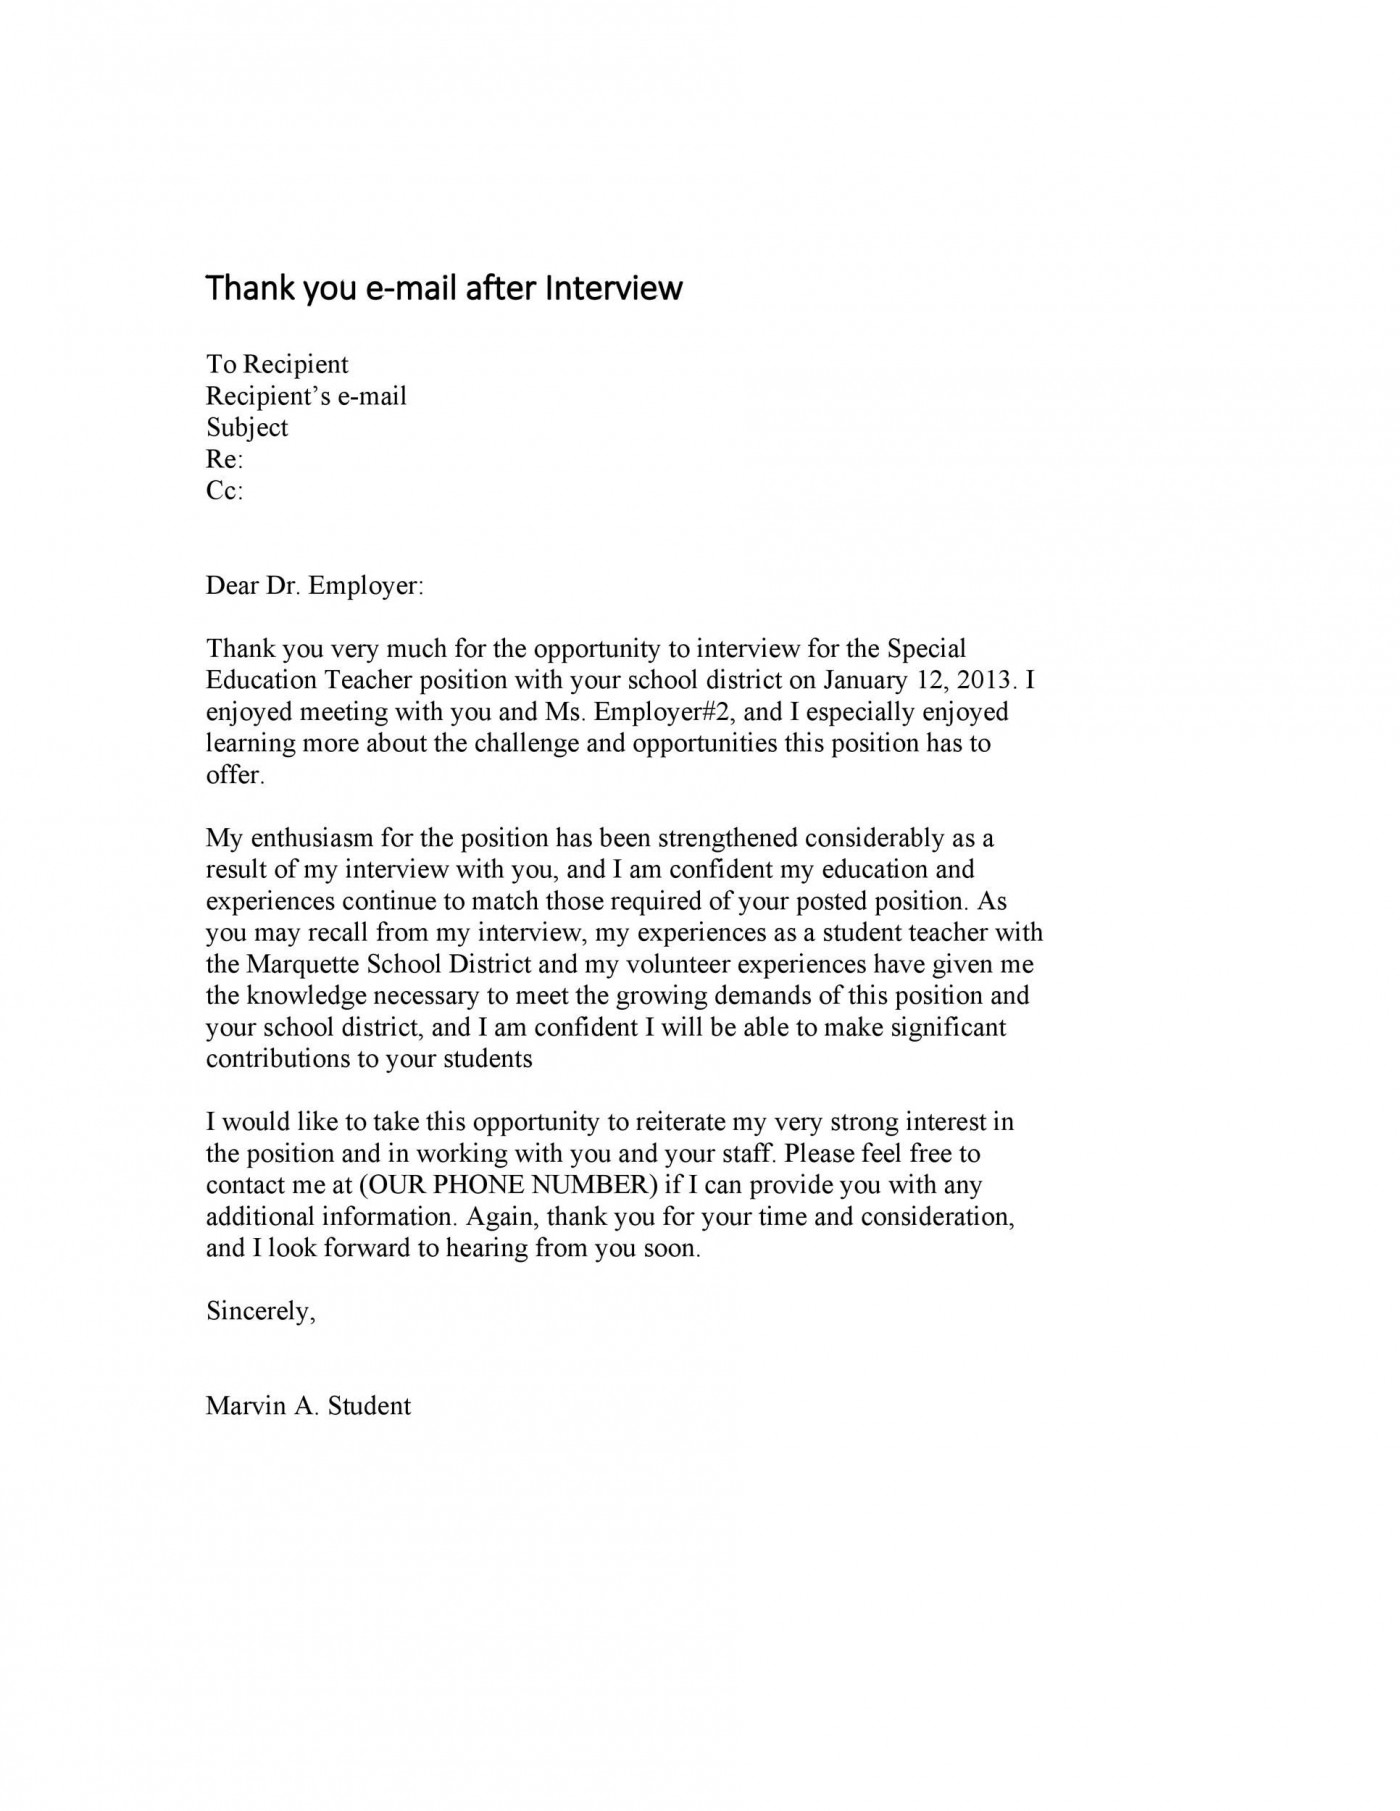 009 Frightening Thank You Note Template For Job Interview Image  Letter Sample After Card1400